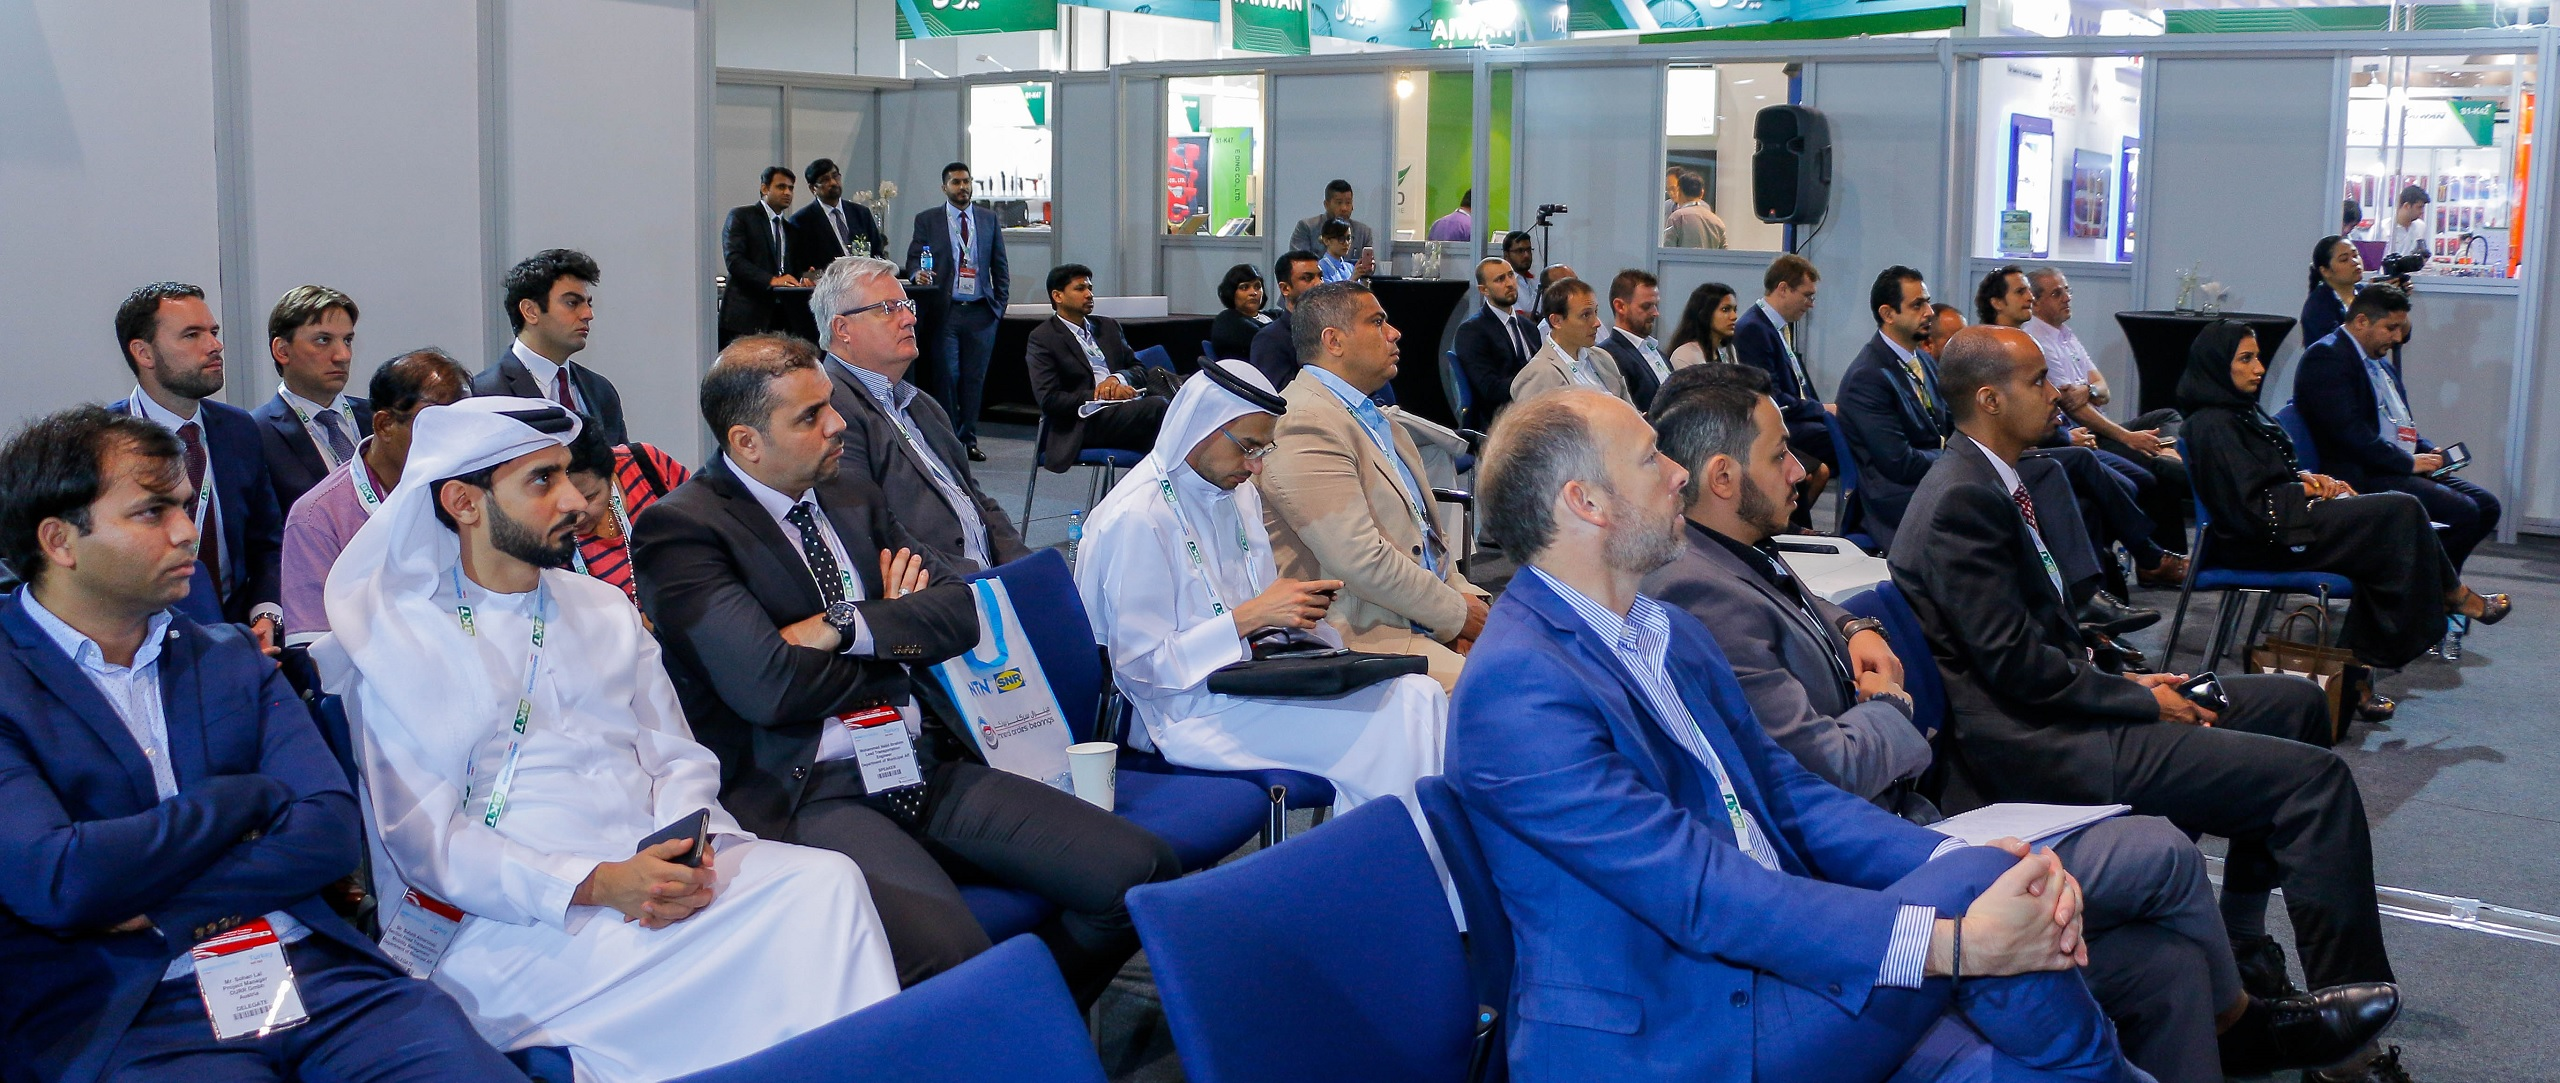 CPD Certification with IMI at Automechanika Dubai